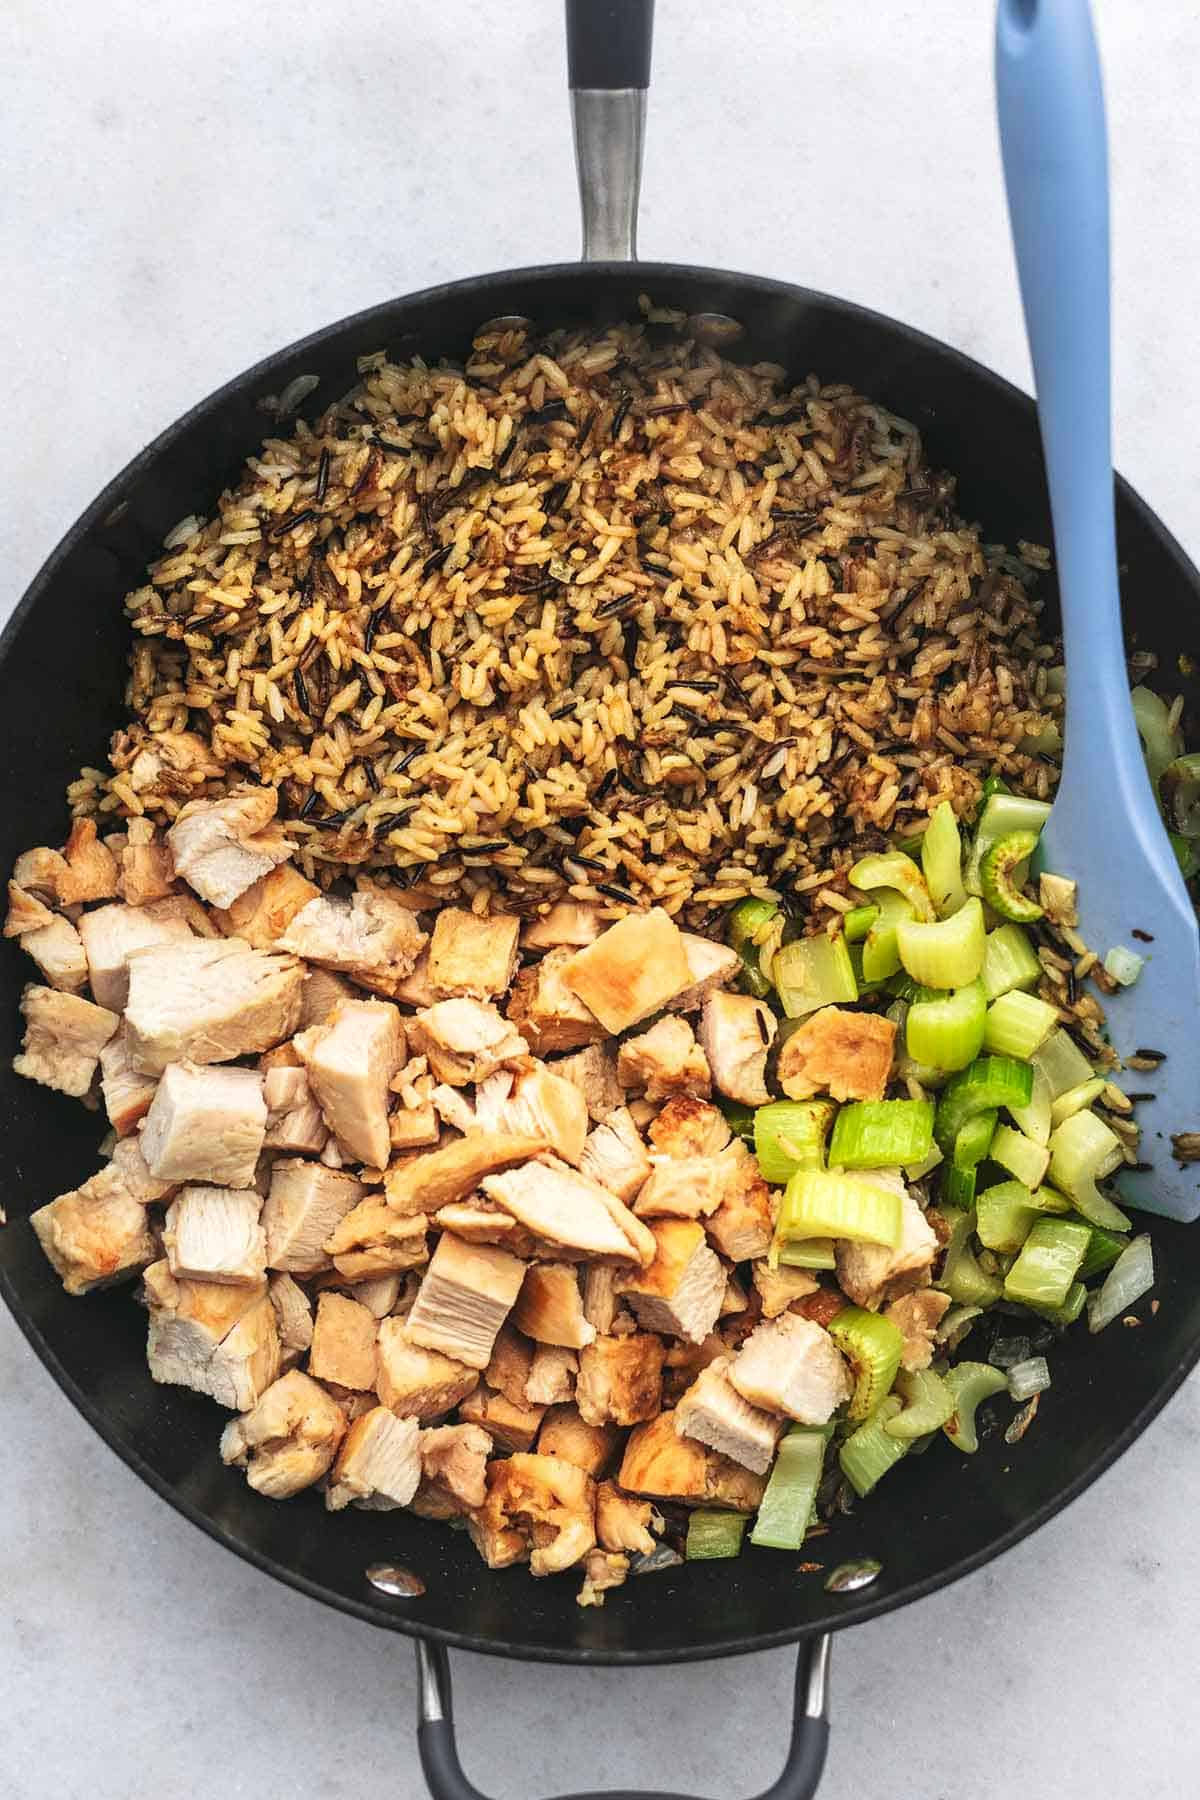 casserole preparation showing chicken, celery, and rice in a skillet